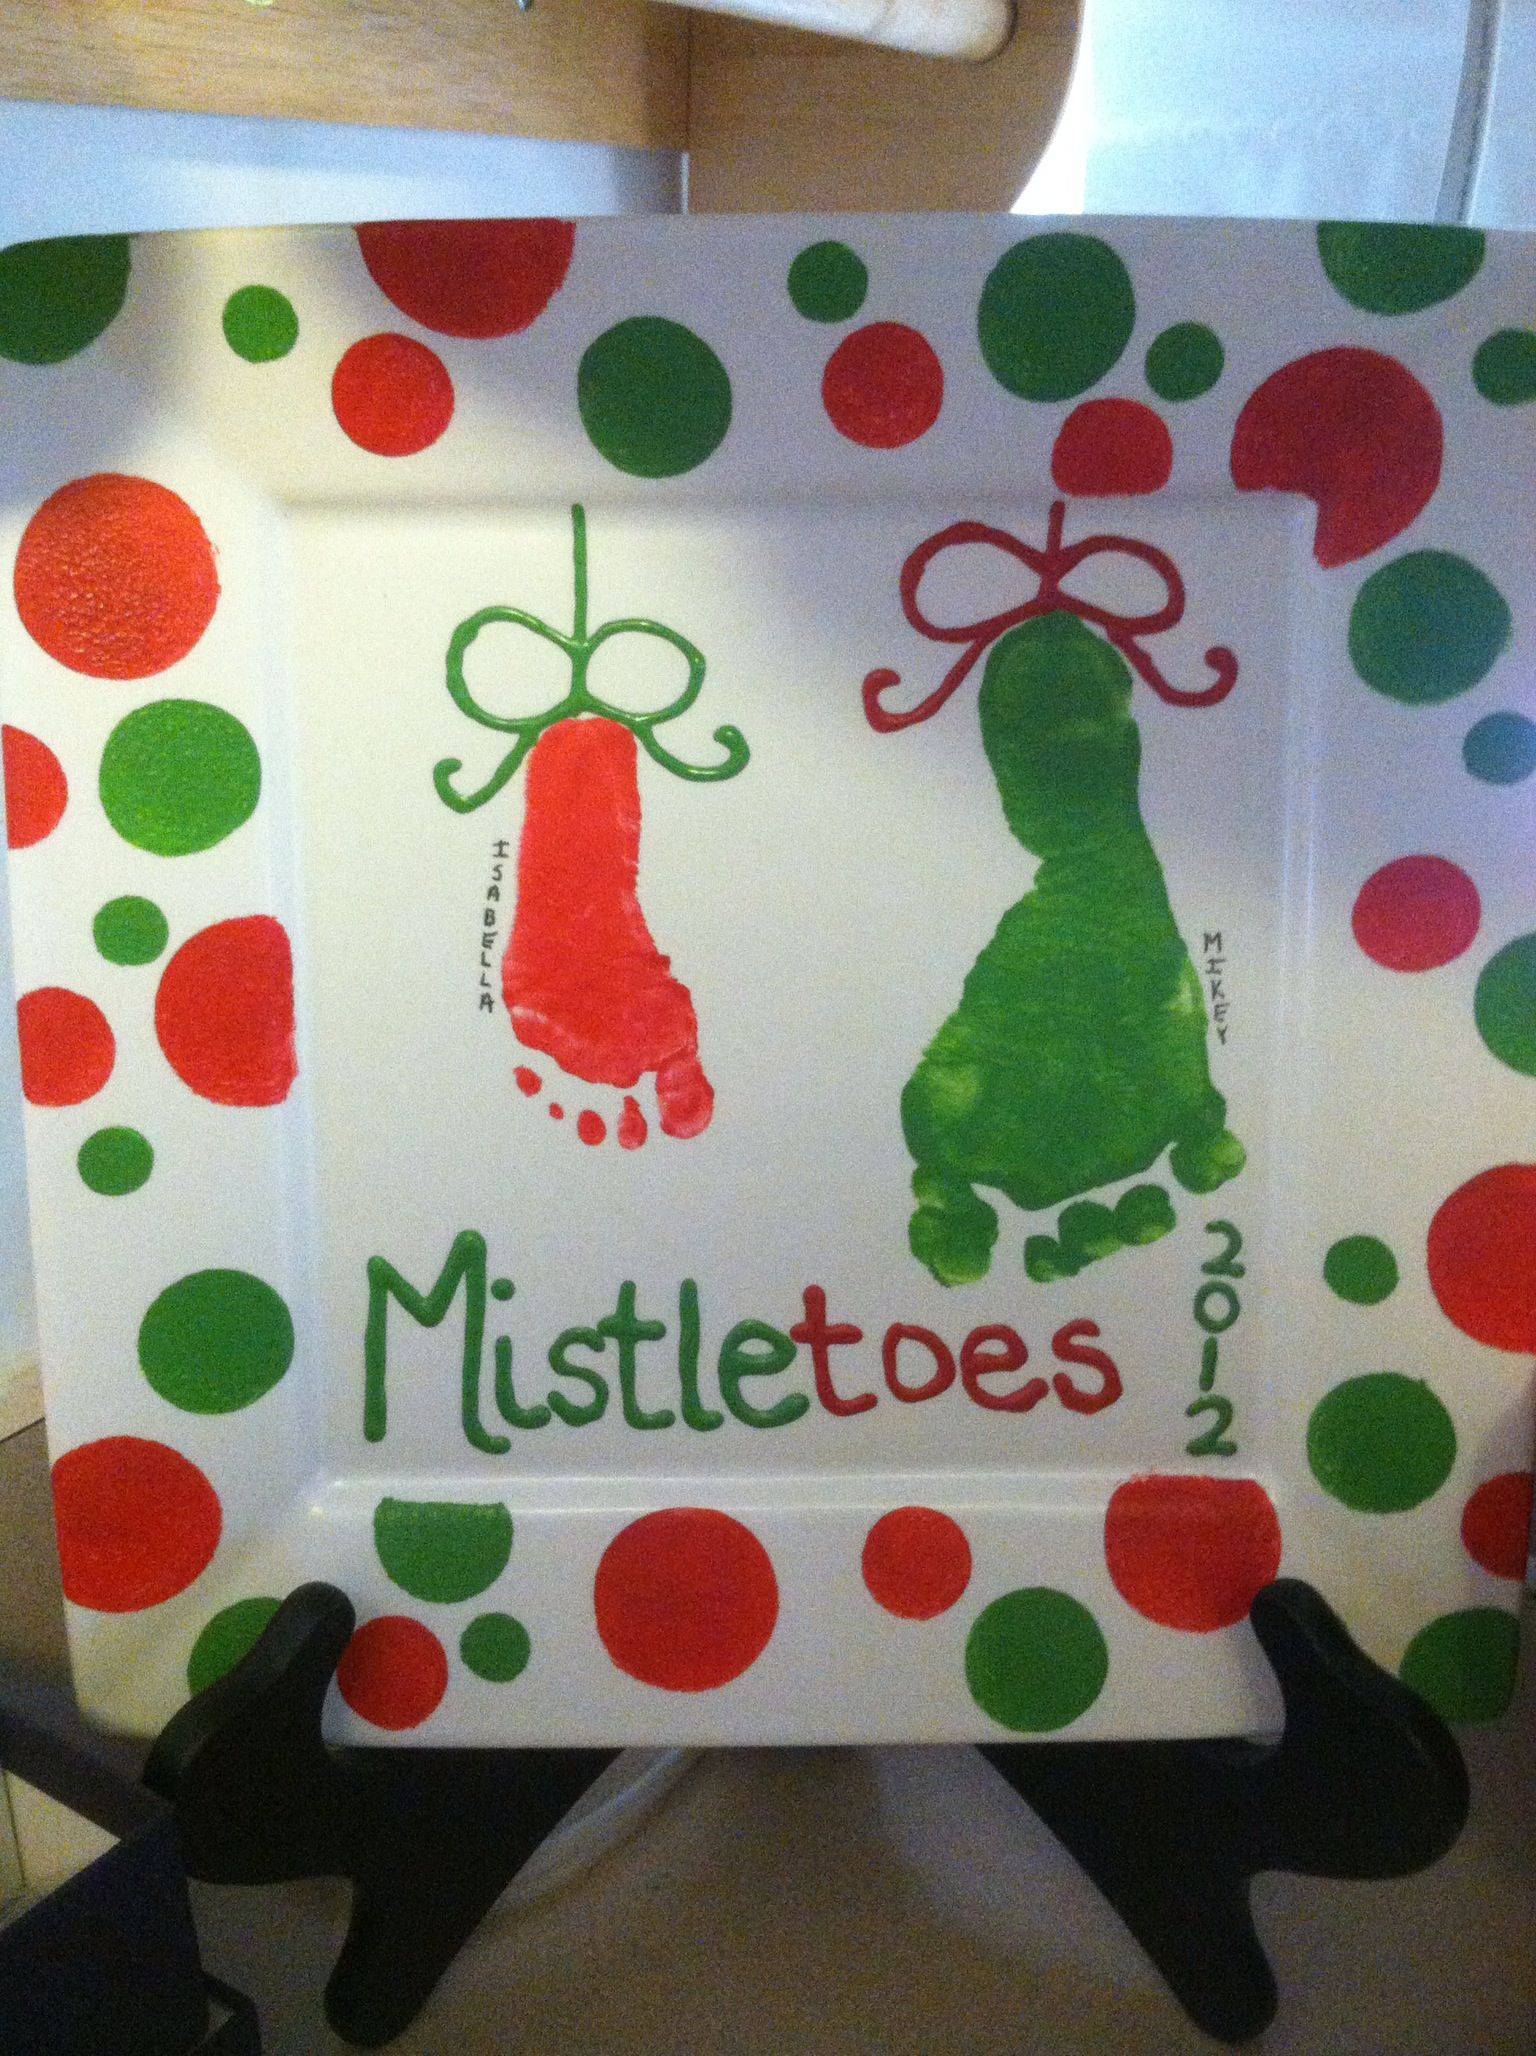 Made 13 Of These For Everyone For Christmas Homemade Presents Are The Best I Love Pinterest Preschool Christmas Grandparents Christmas Gifts Xmas Crafts